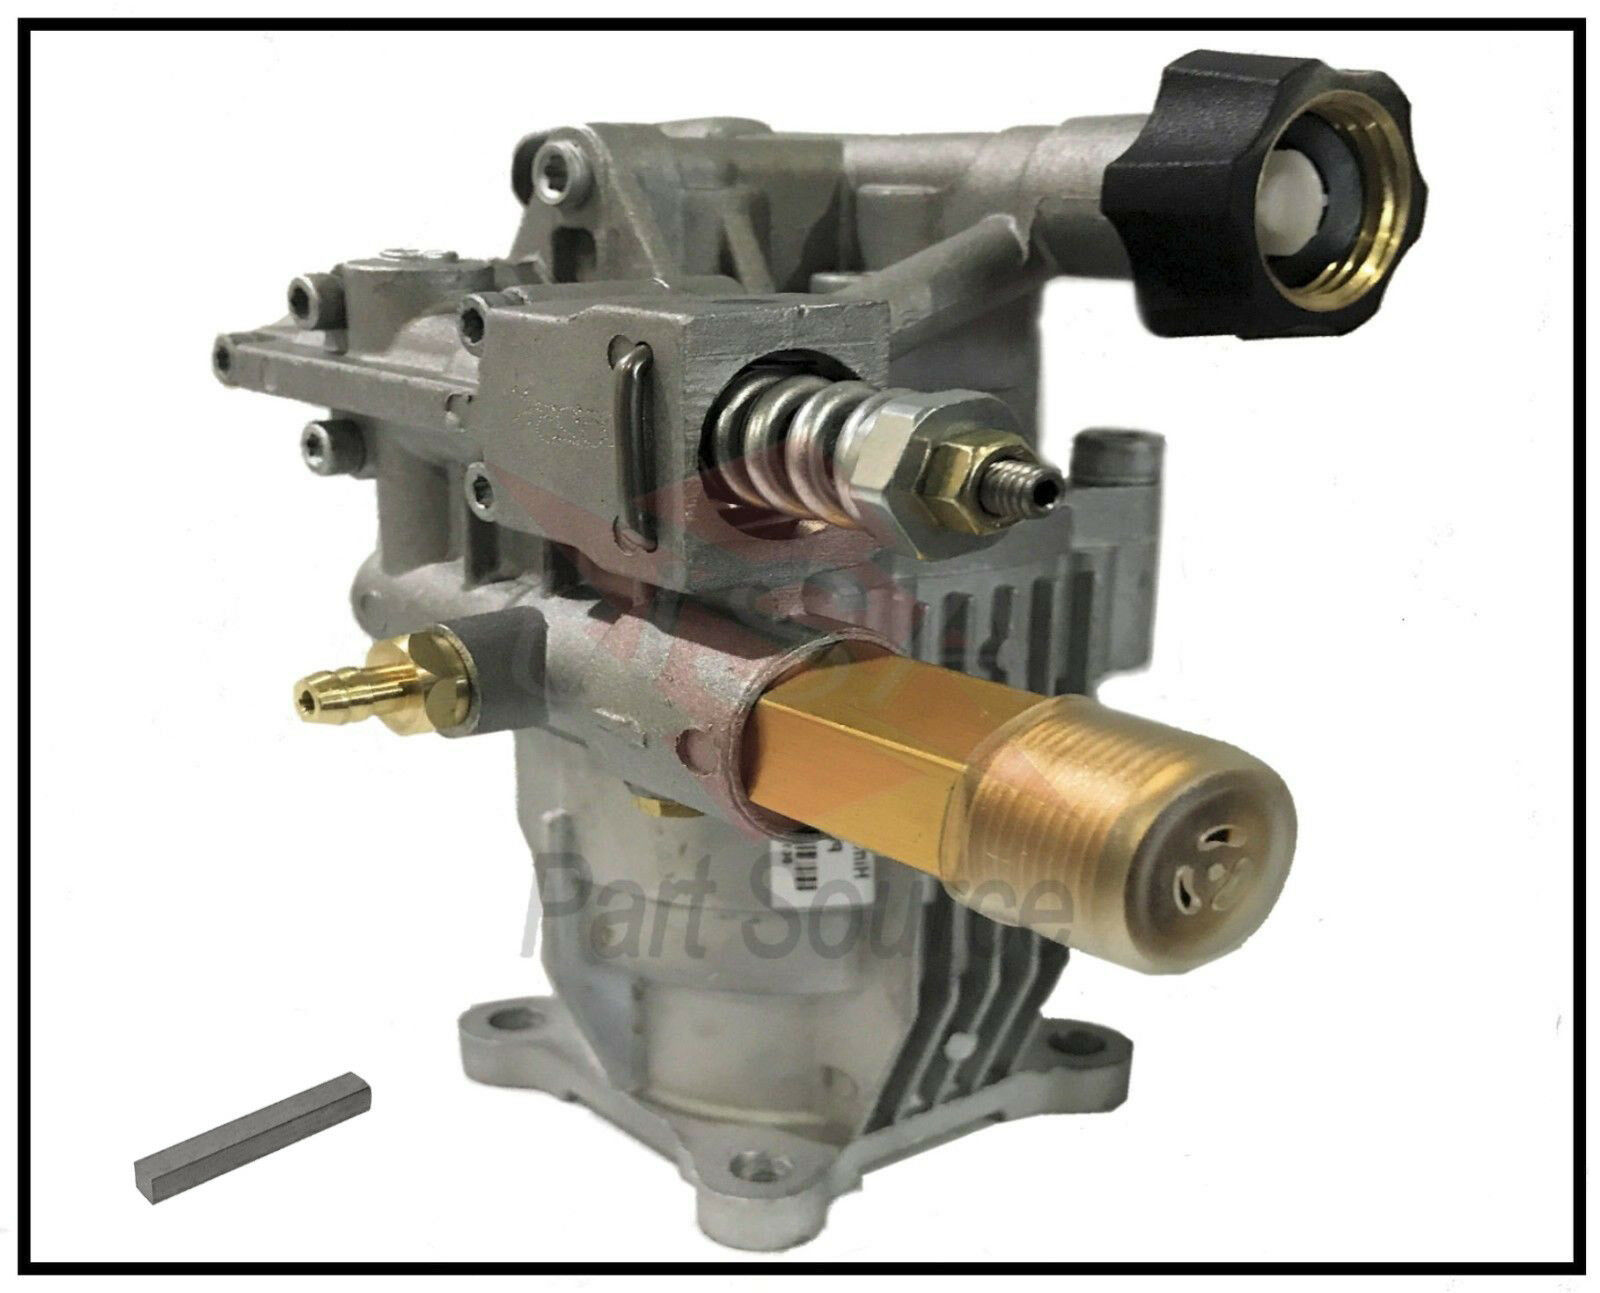 Primary image for NEW 3000 PSI Pressure Washer Water Pump Troy-Bilt 020208 020208-0 020208-01